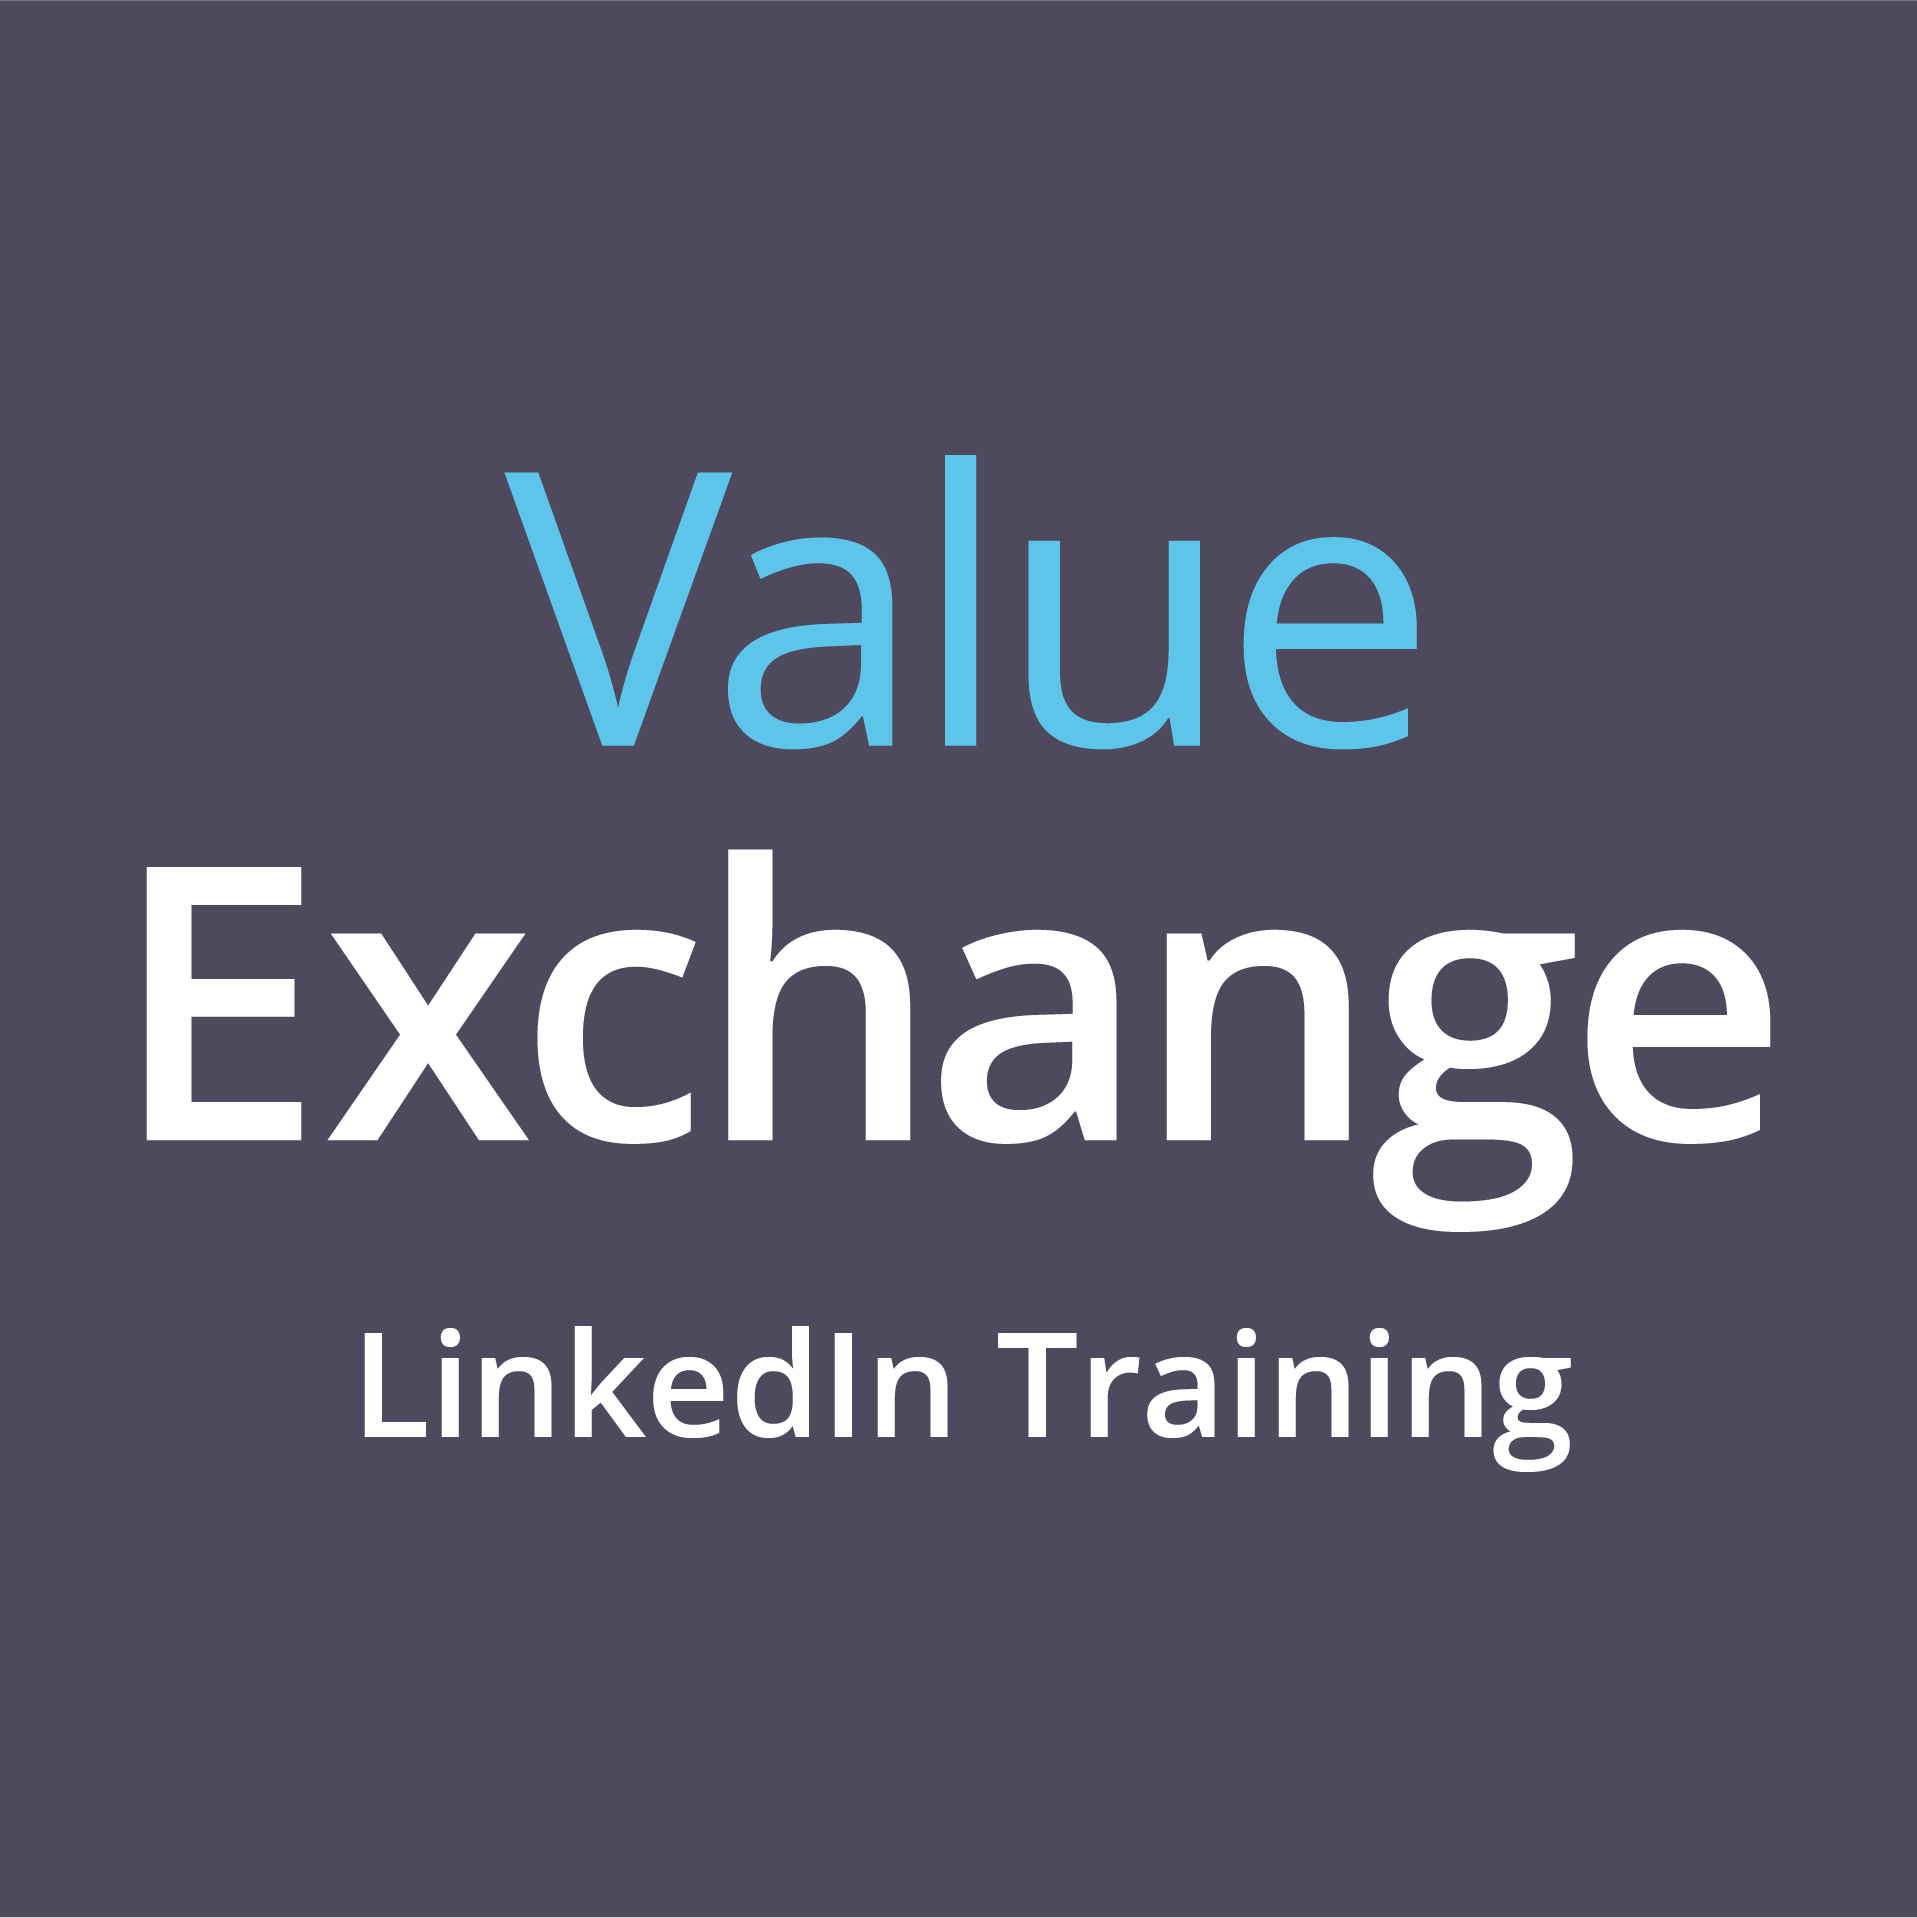 Value Exchange LinkedIn training